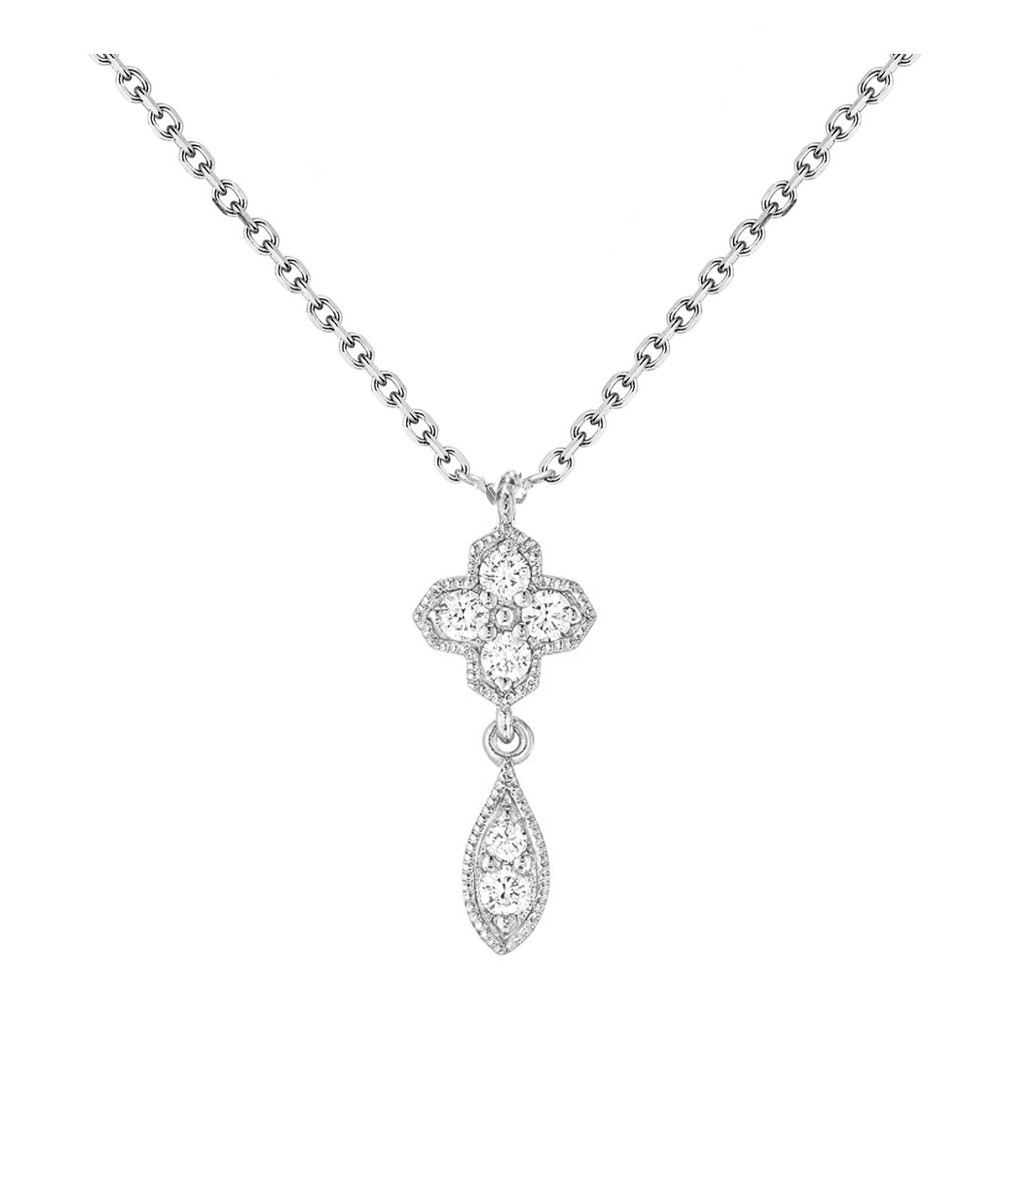 STONE PARIS - Collier Simple Fleurs du Mal Or Diamants